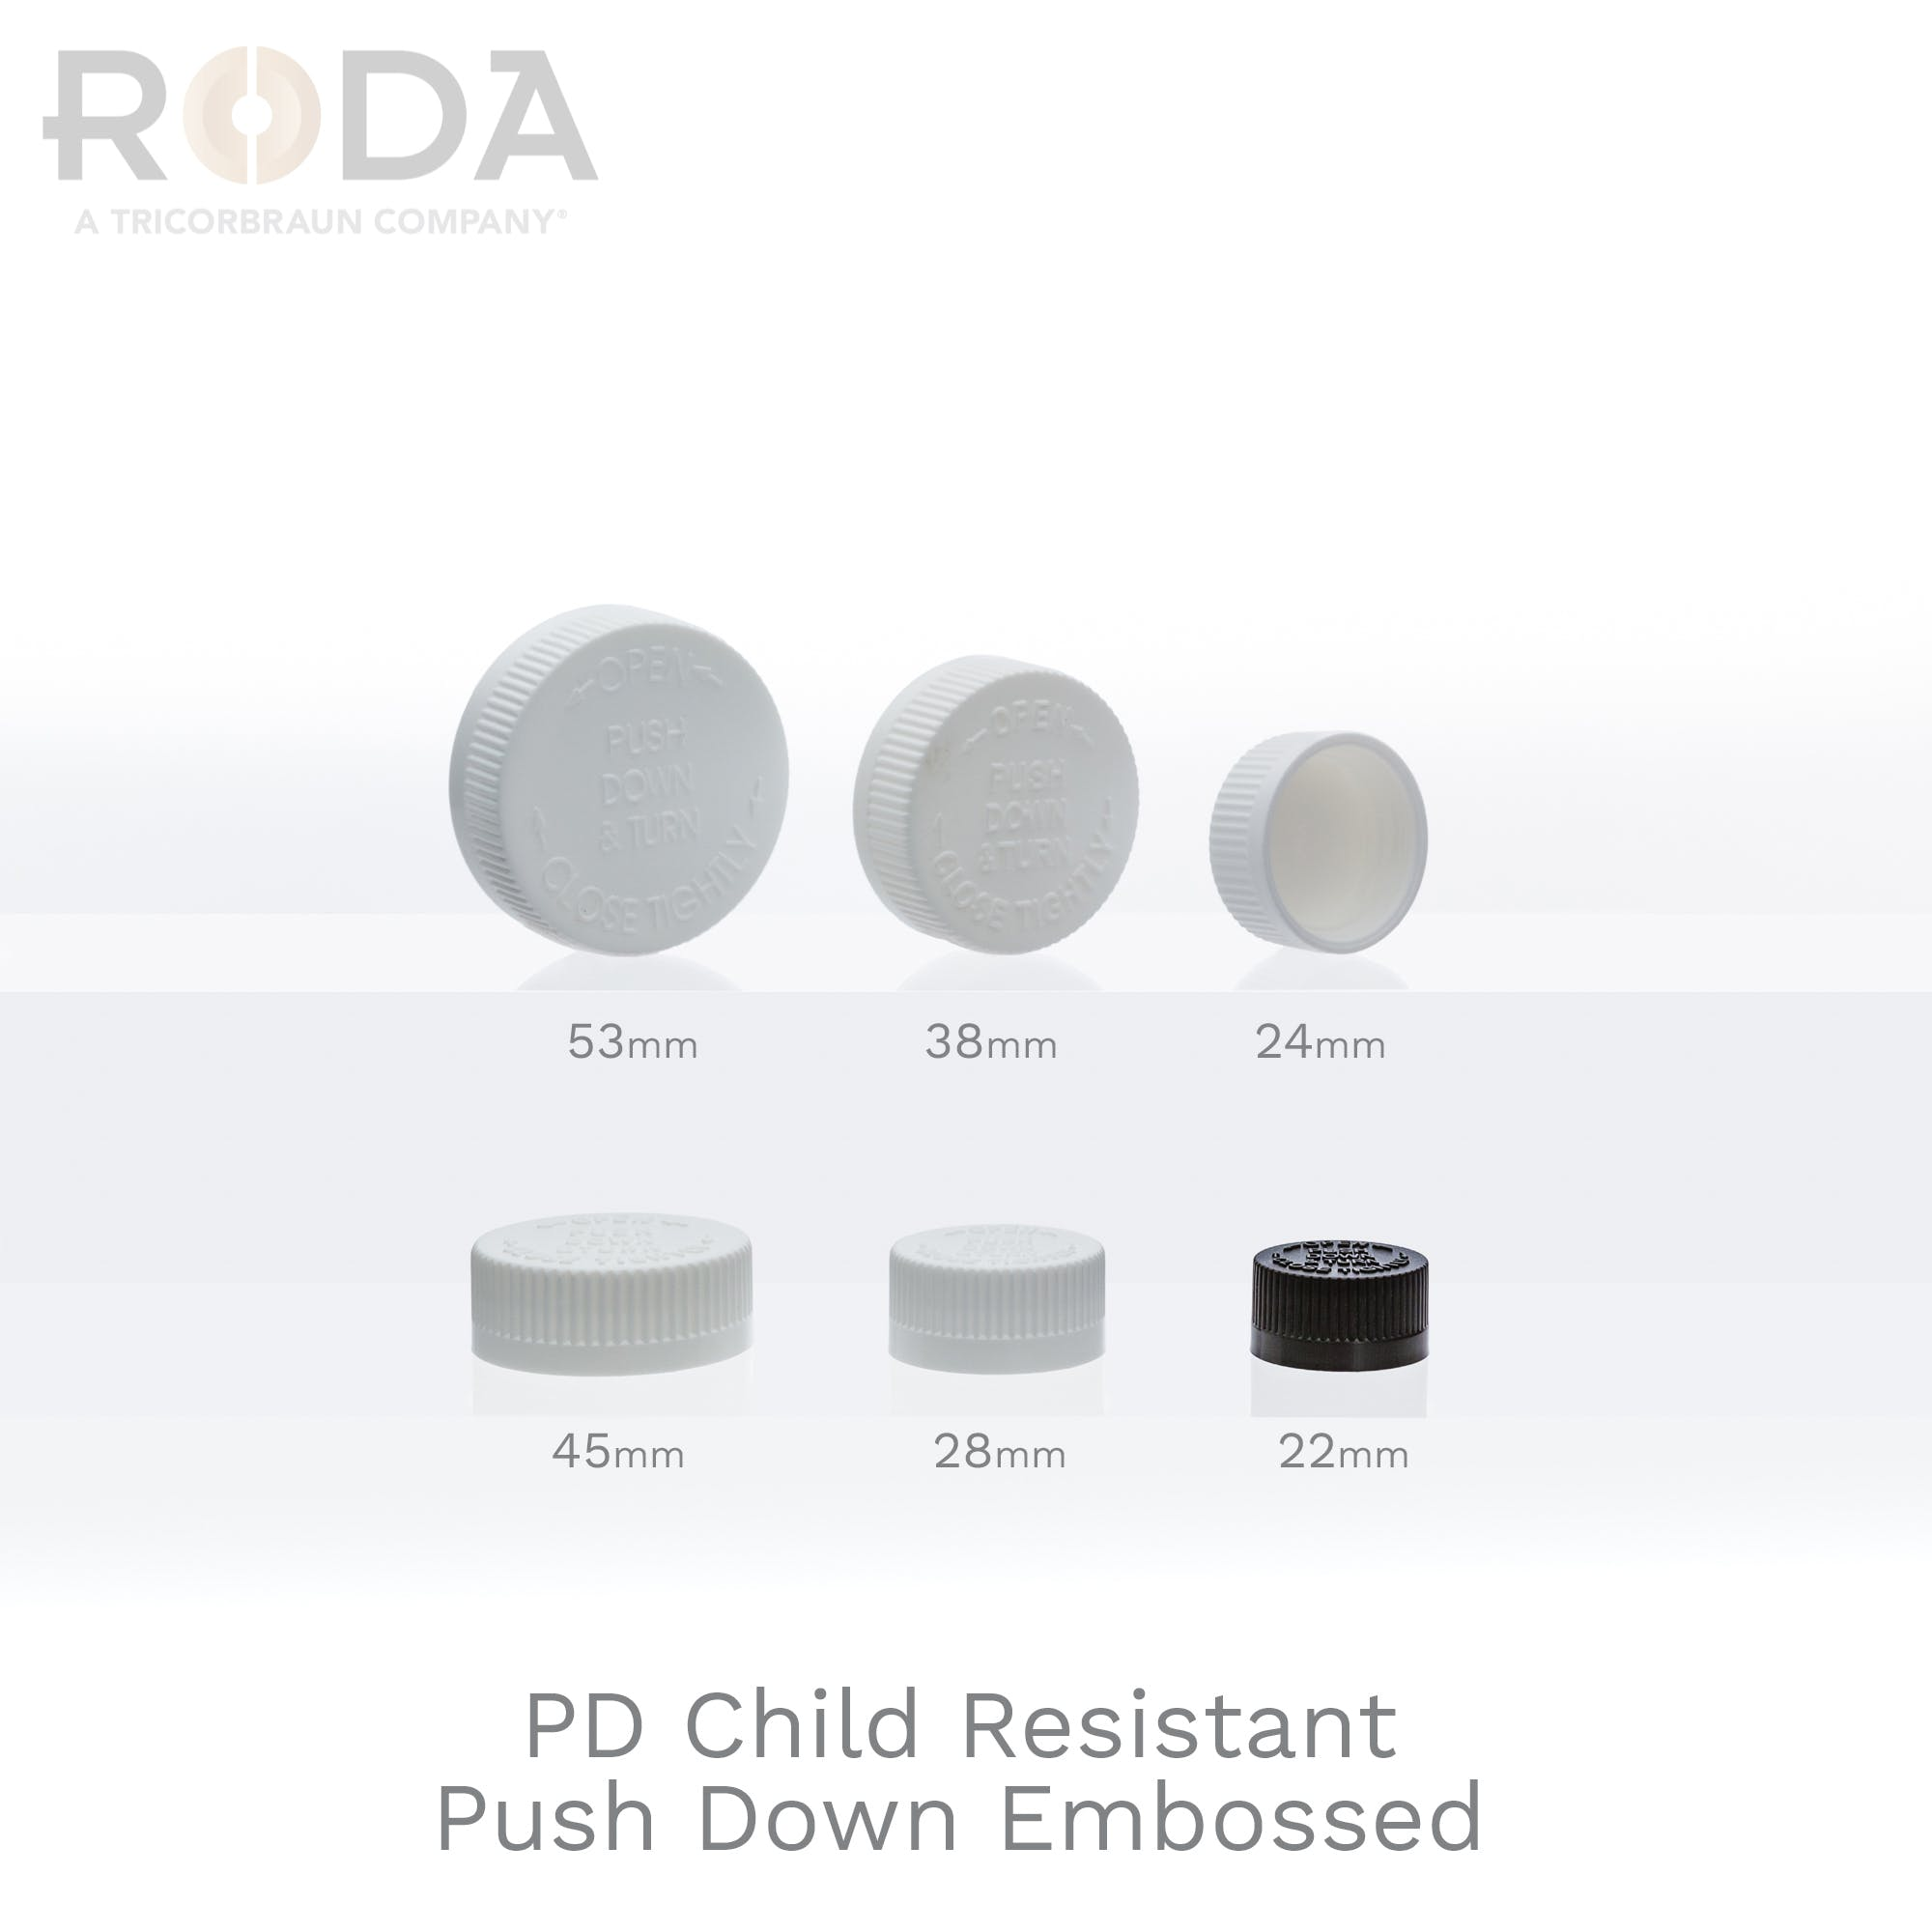 PD Child Resistant Push Down Embossed